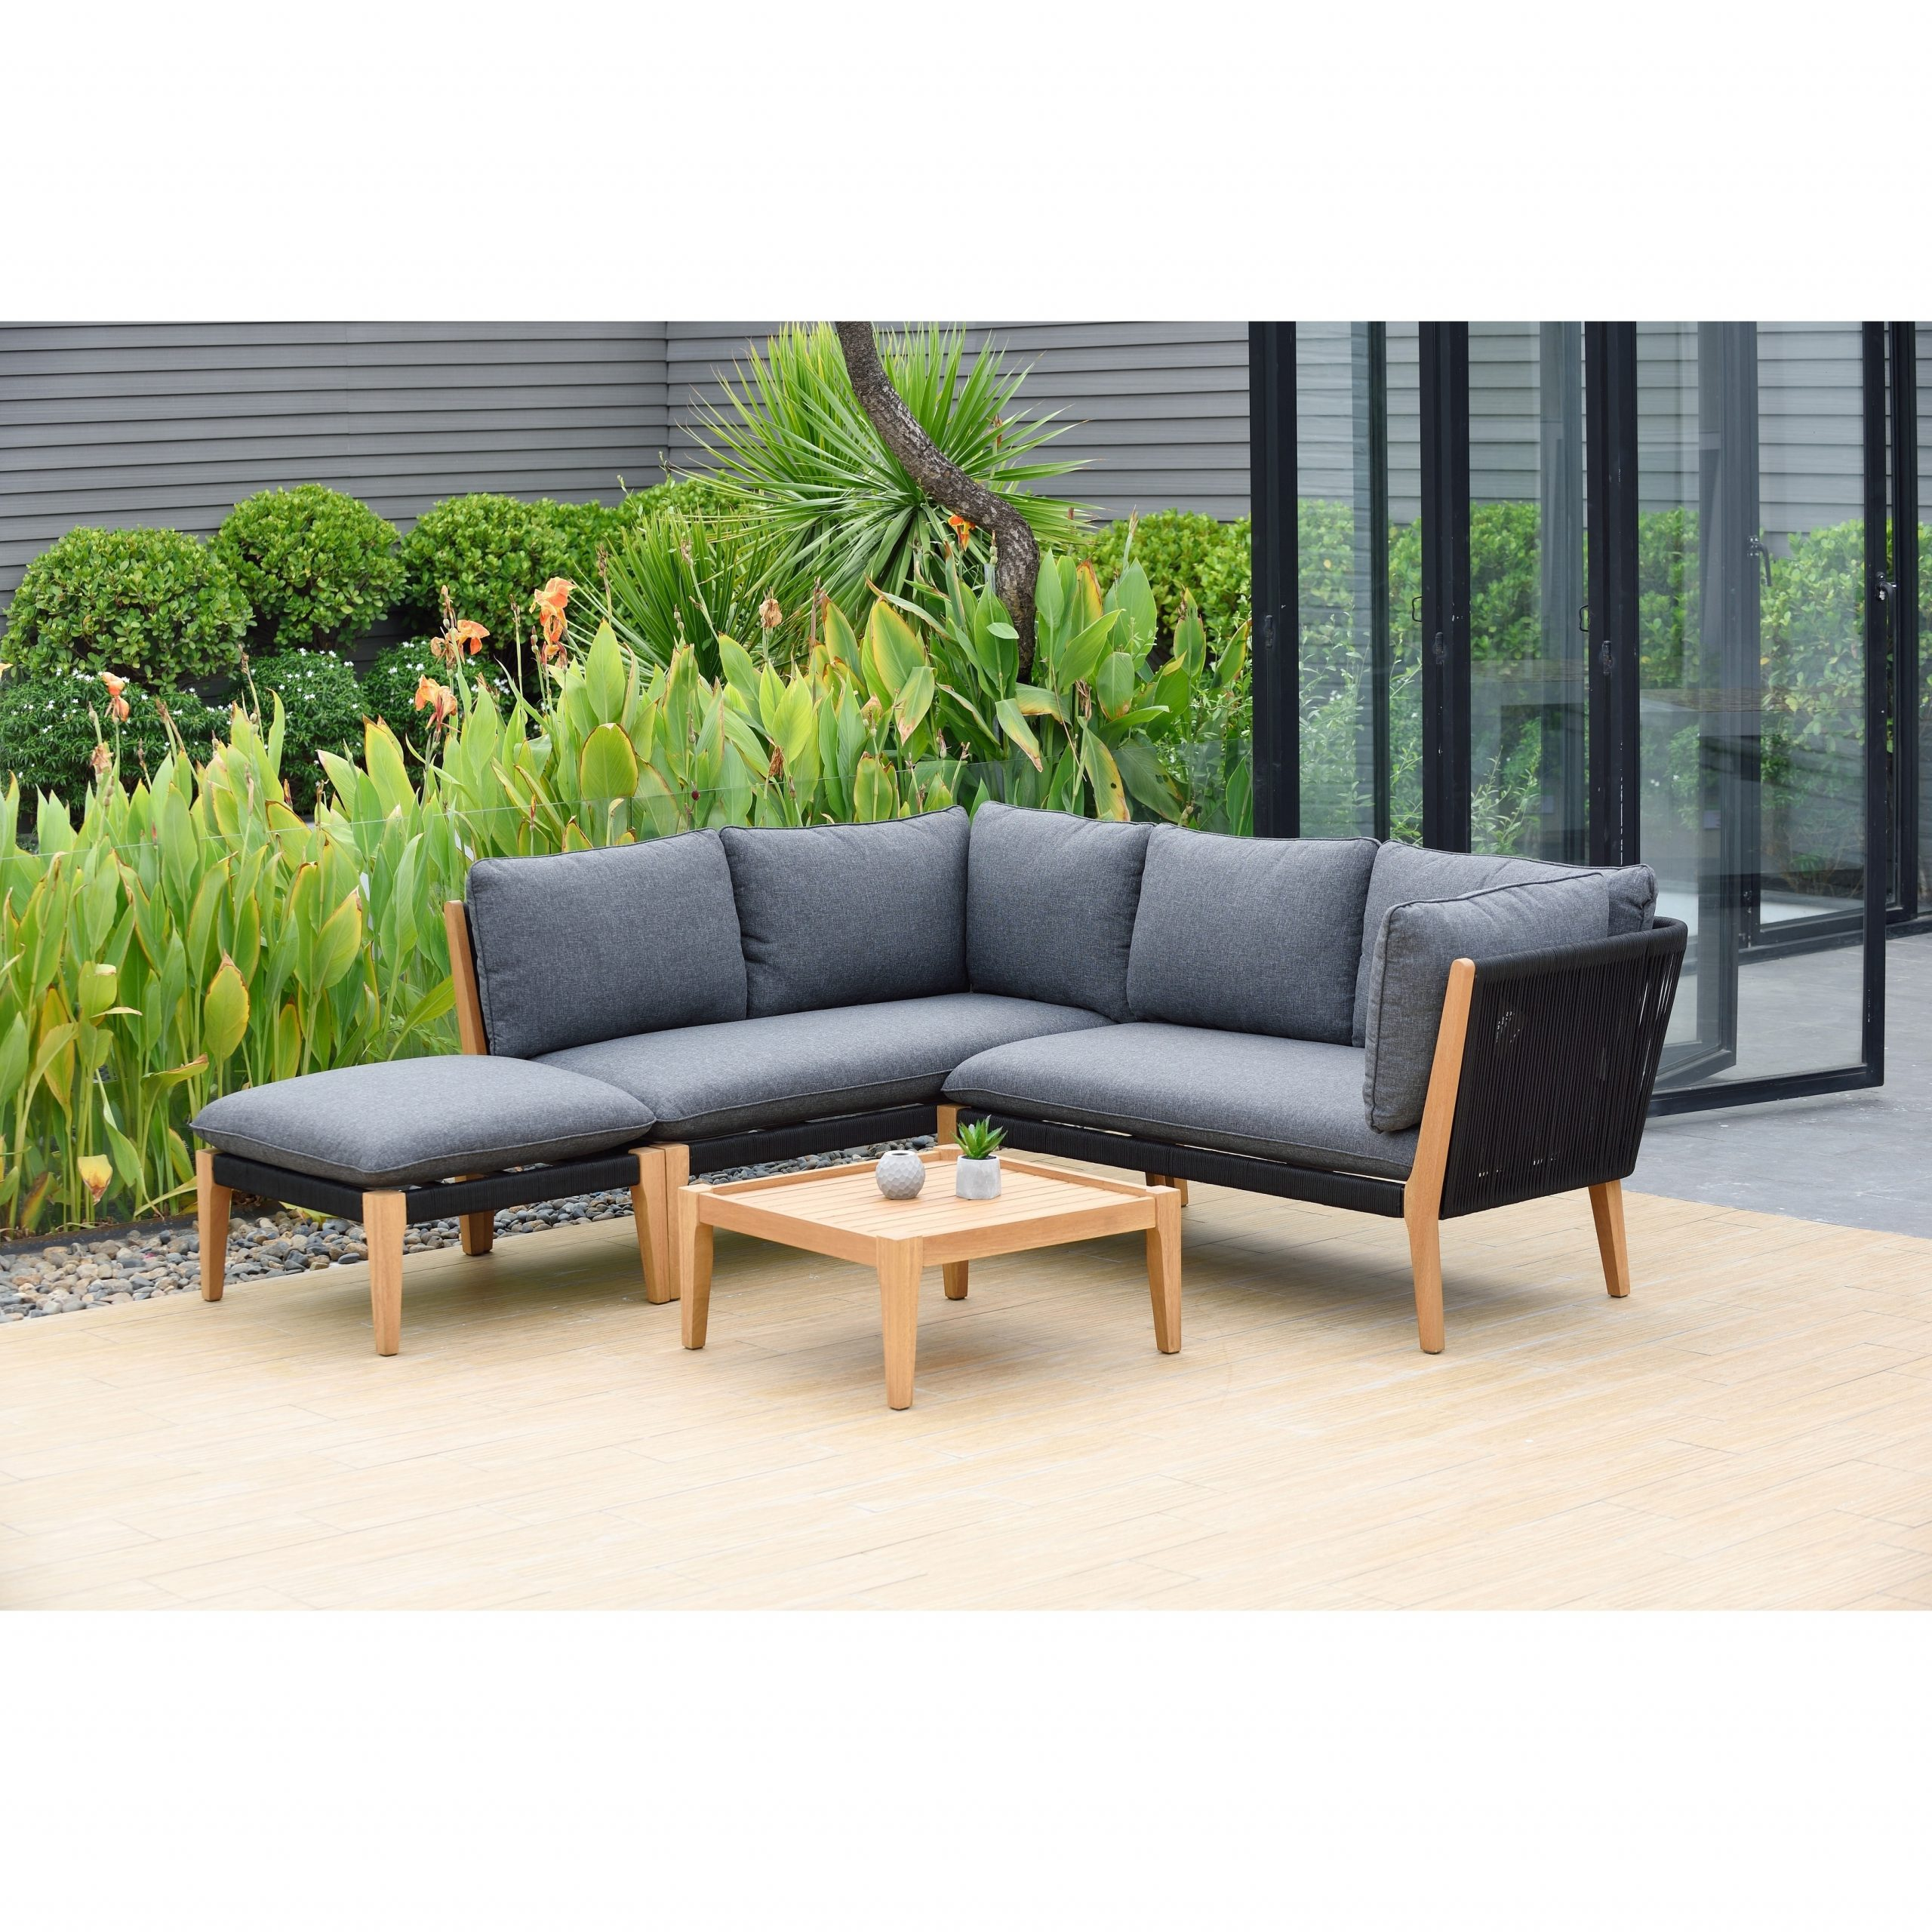 Lazio 4 Piece Patio Outdoor Sectional Set With Certified With Regard To Recent Olinda 3 Piece Sectionals Seating Group With Cushions (Gallery 8 of 25)